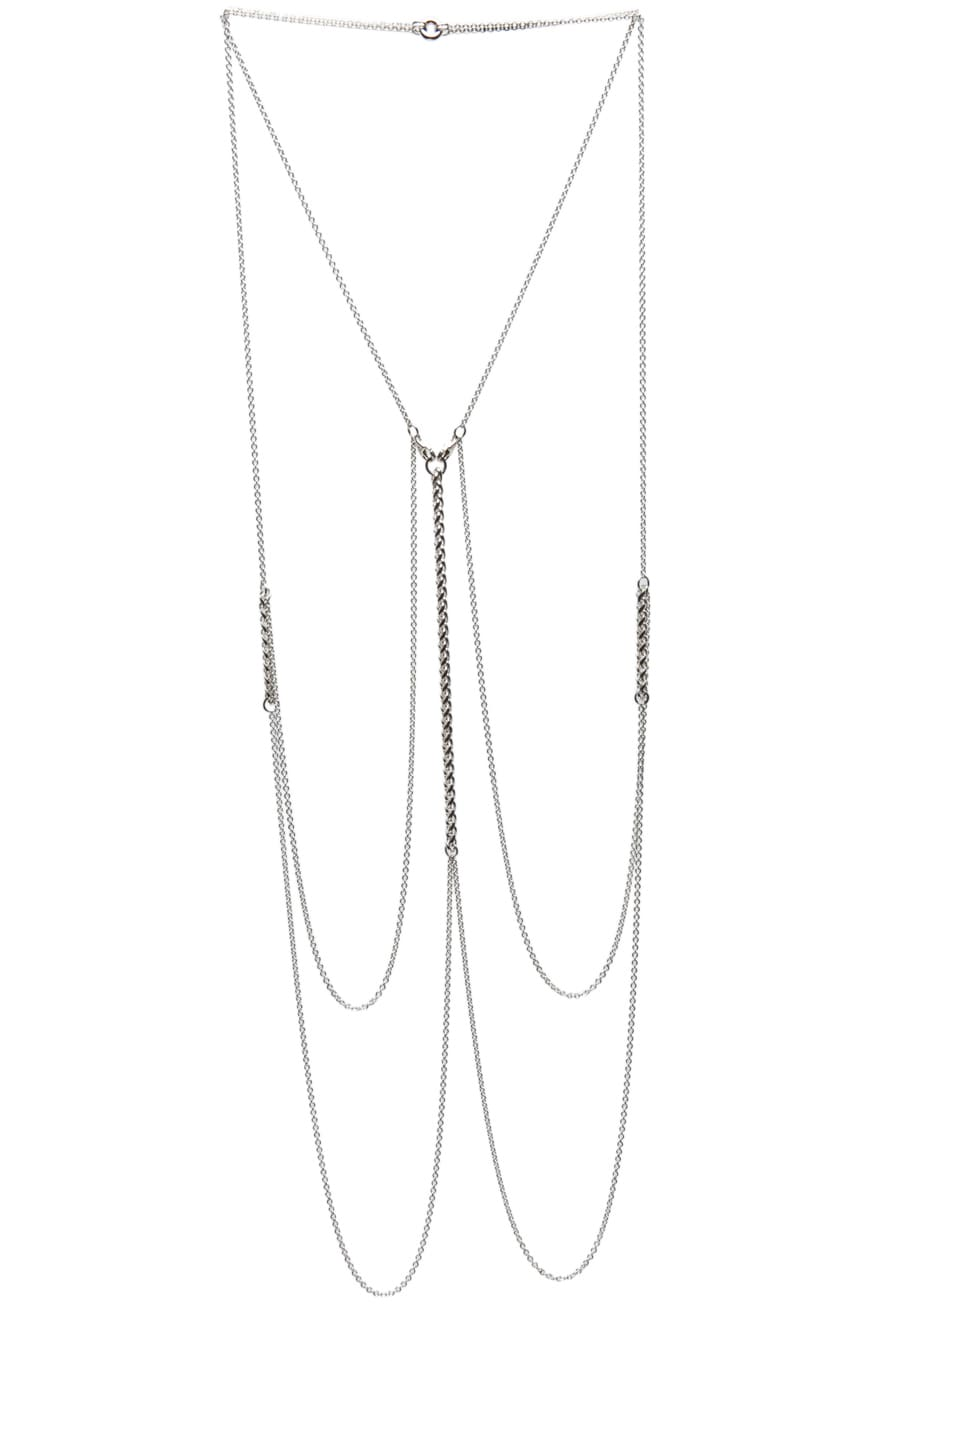 Image 1 of Bliss Lau Visceral Body Chain in Silver